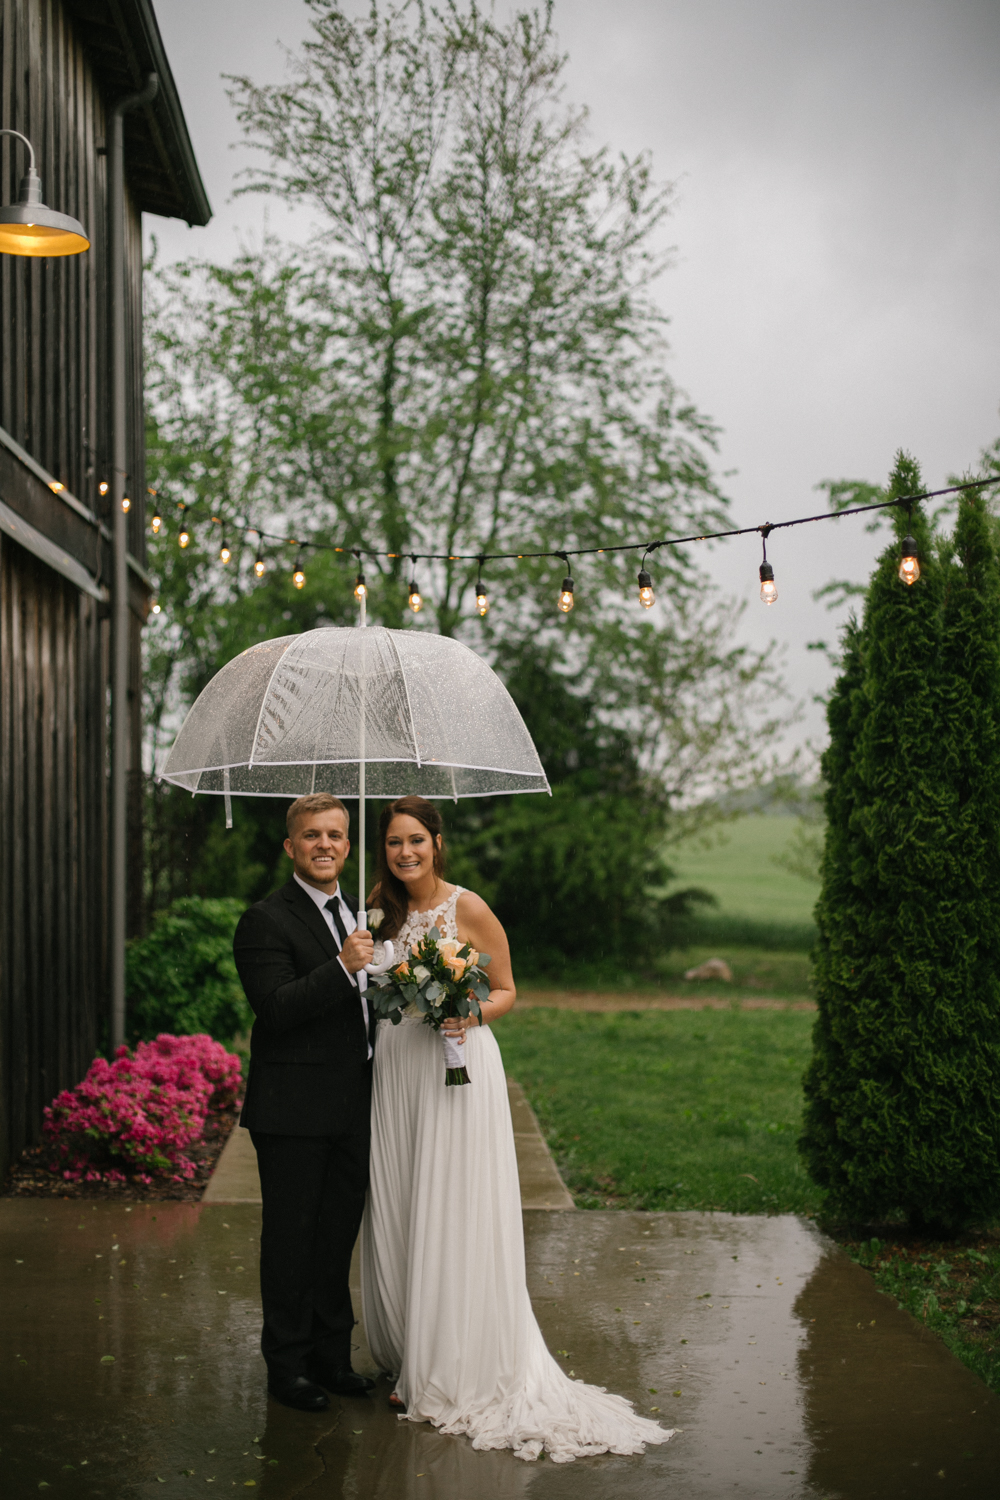 2018.05.05_SarahDillon_Wedding_Starks-0051.jpg